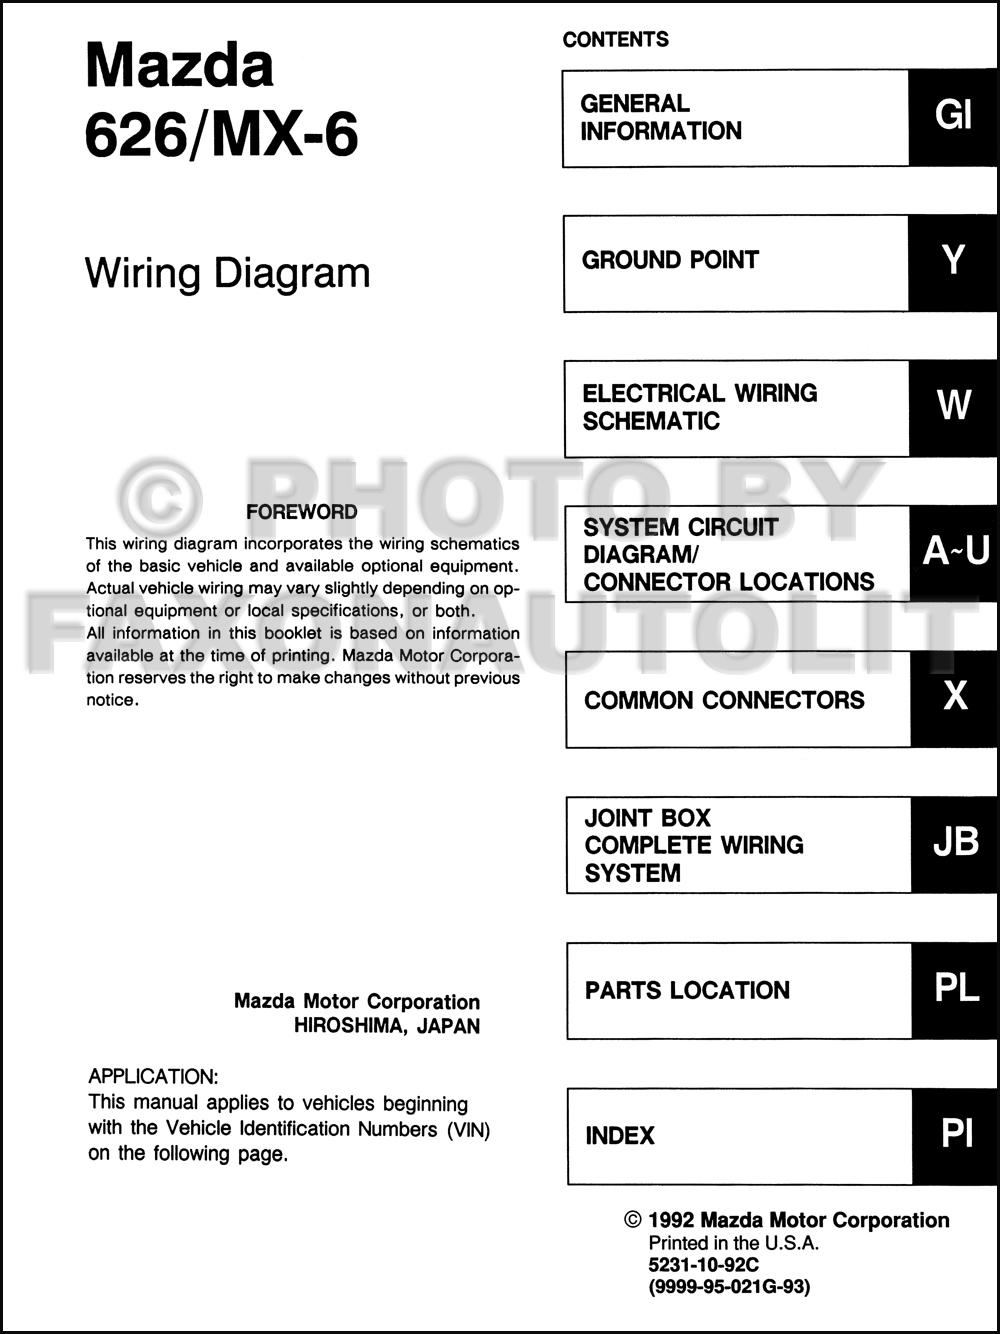 1999 mazda 626 starter wiring diagram f471 wiring diagram for mazda 626 wiring resources  f471 wiring diagram for mazda 626